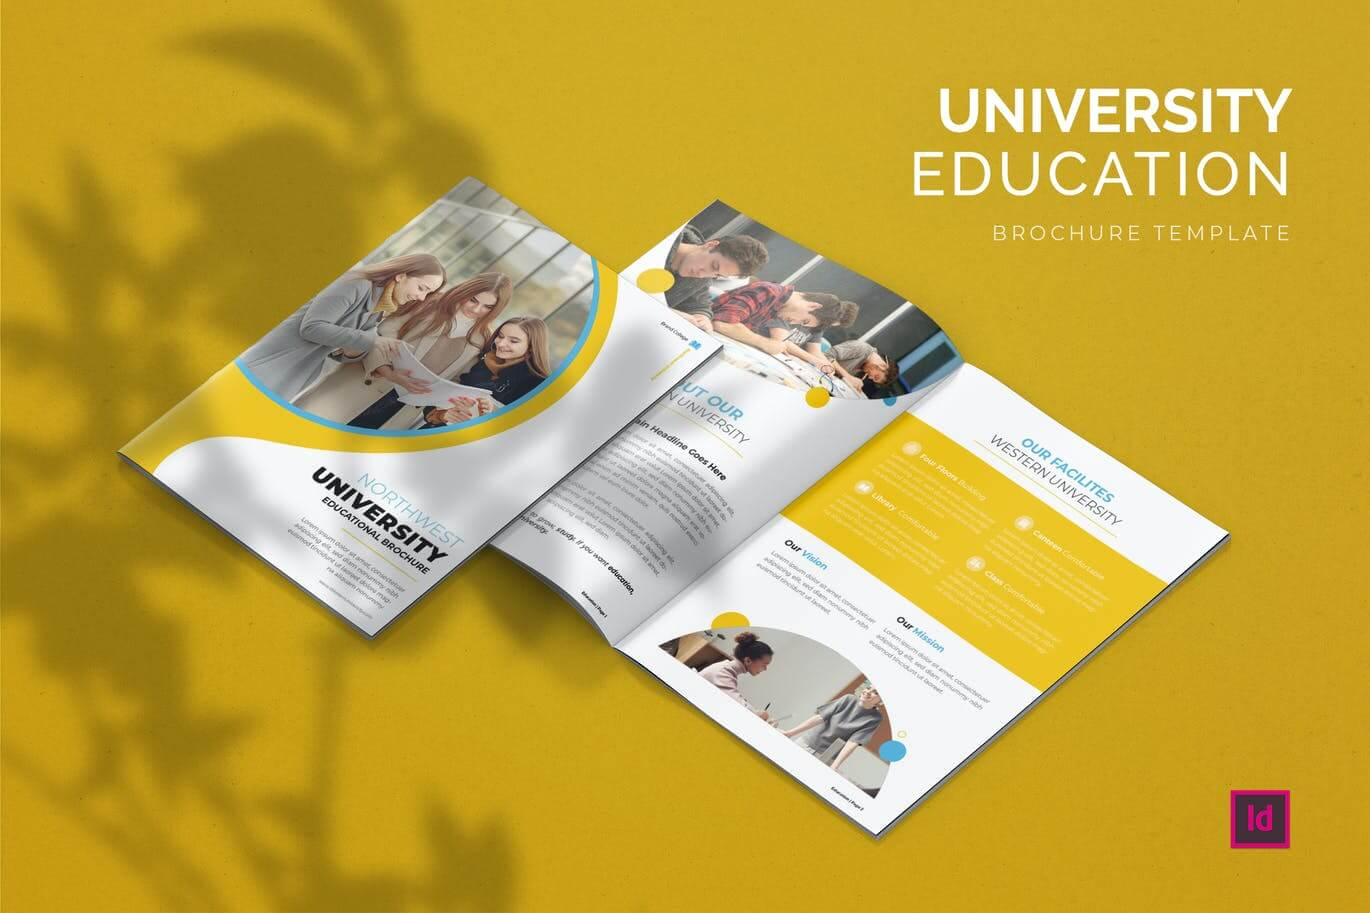 University Educational - Brochure Template (1)